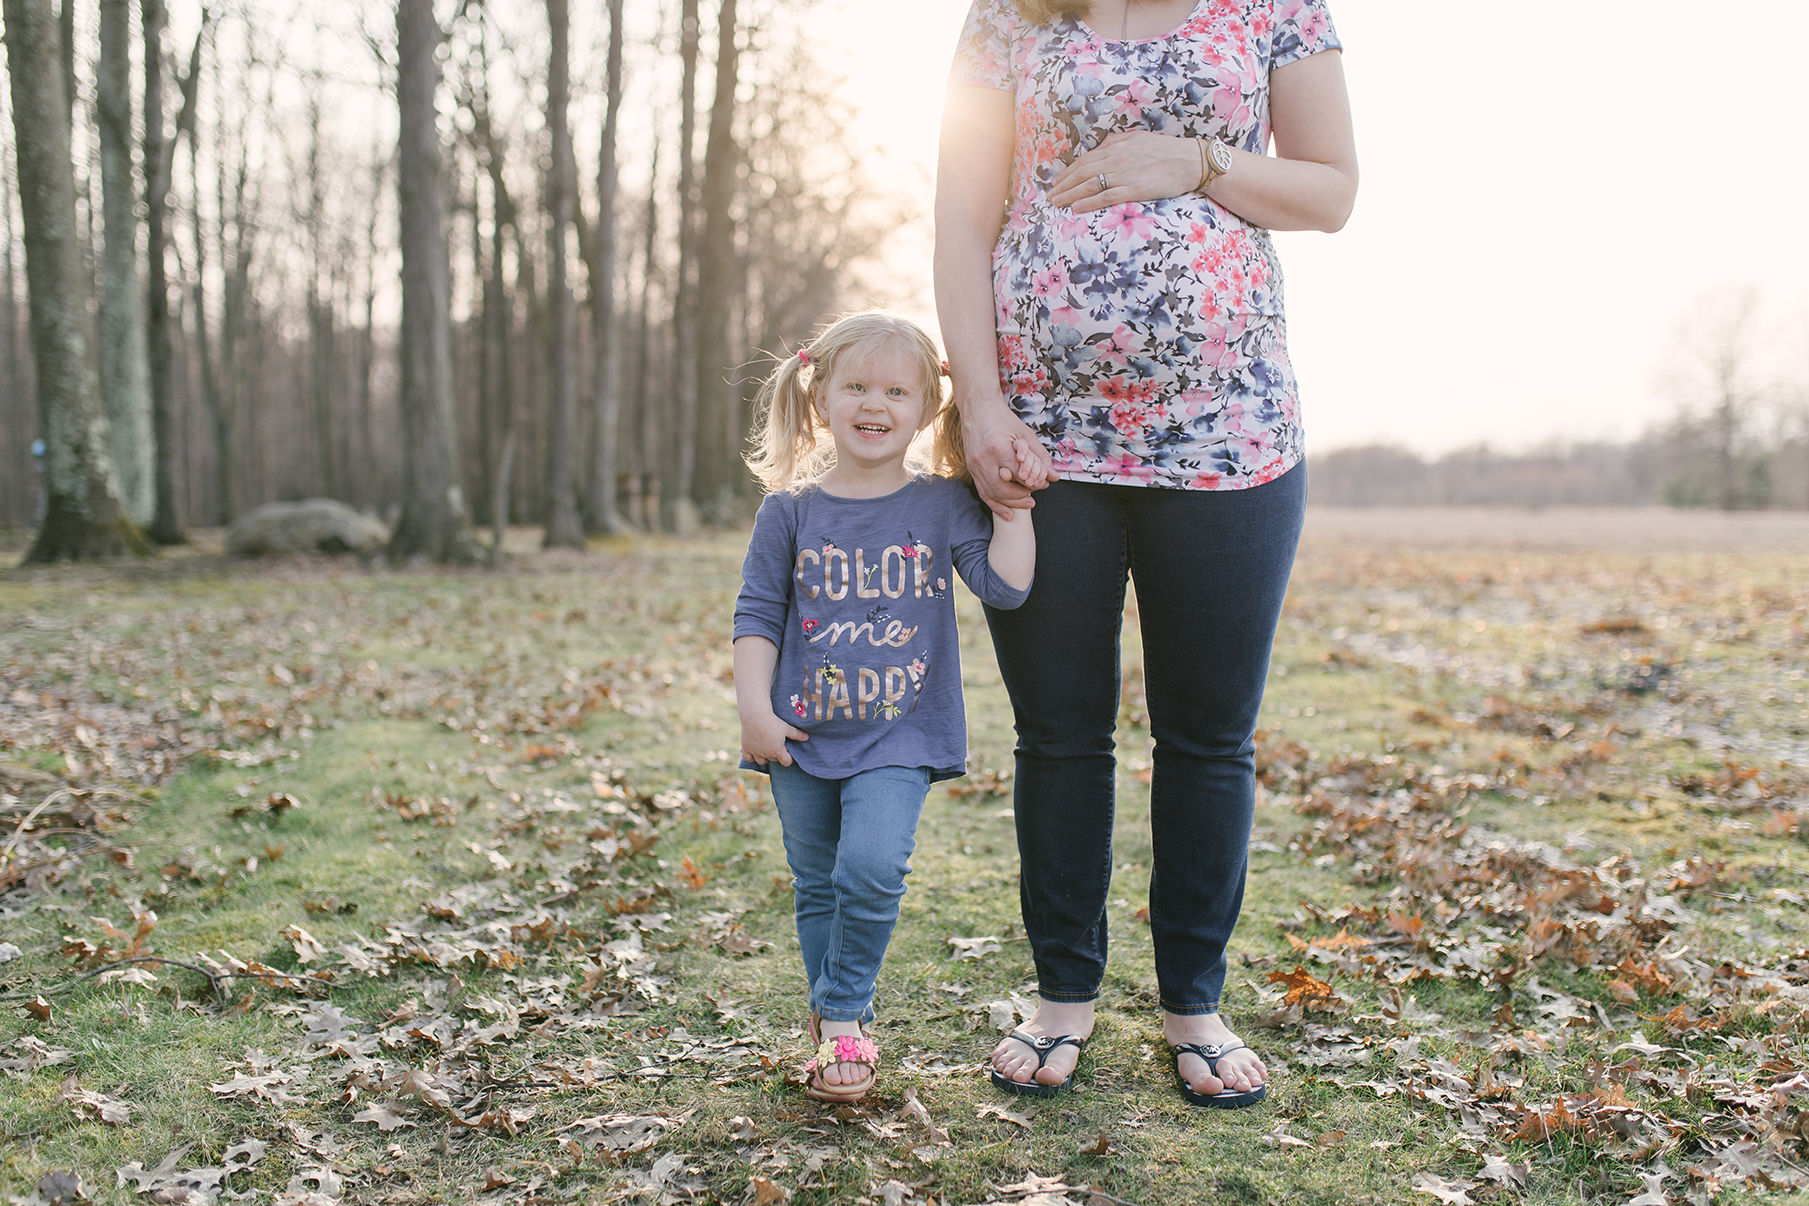 how-to-budget-for-a-baby-blog-by-child-and-family-photographer-christie-leigh-photo-based-in-northeast-ohio-and-western-pennsylvania.jpg